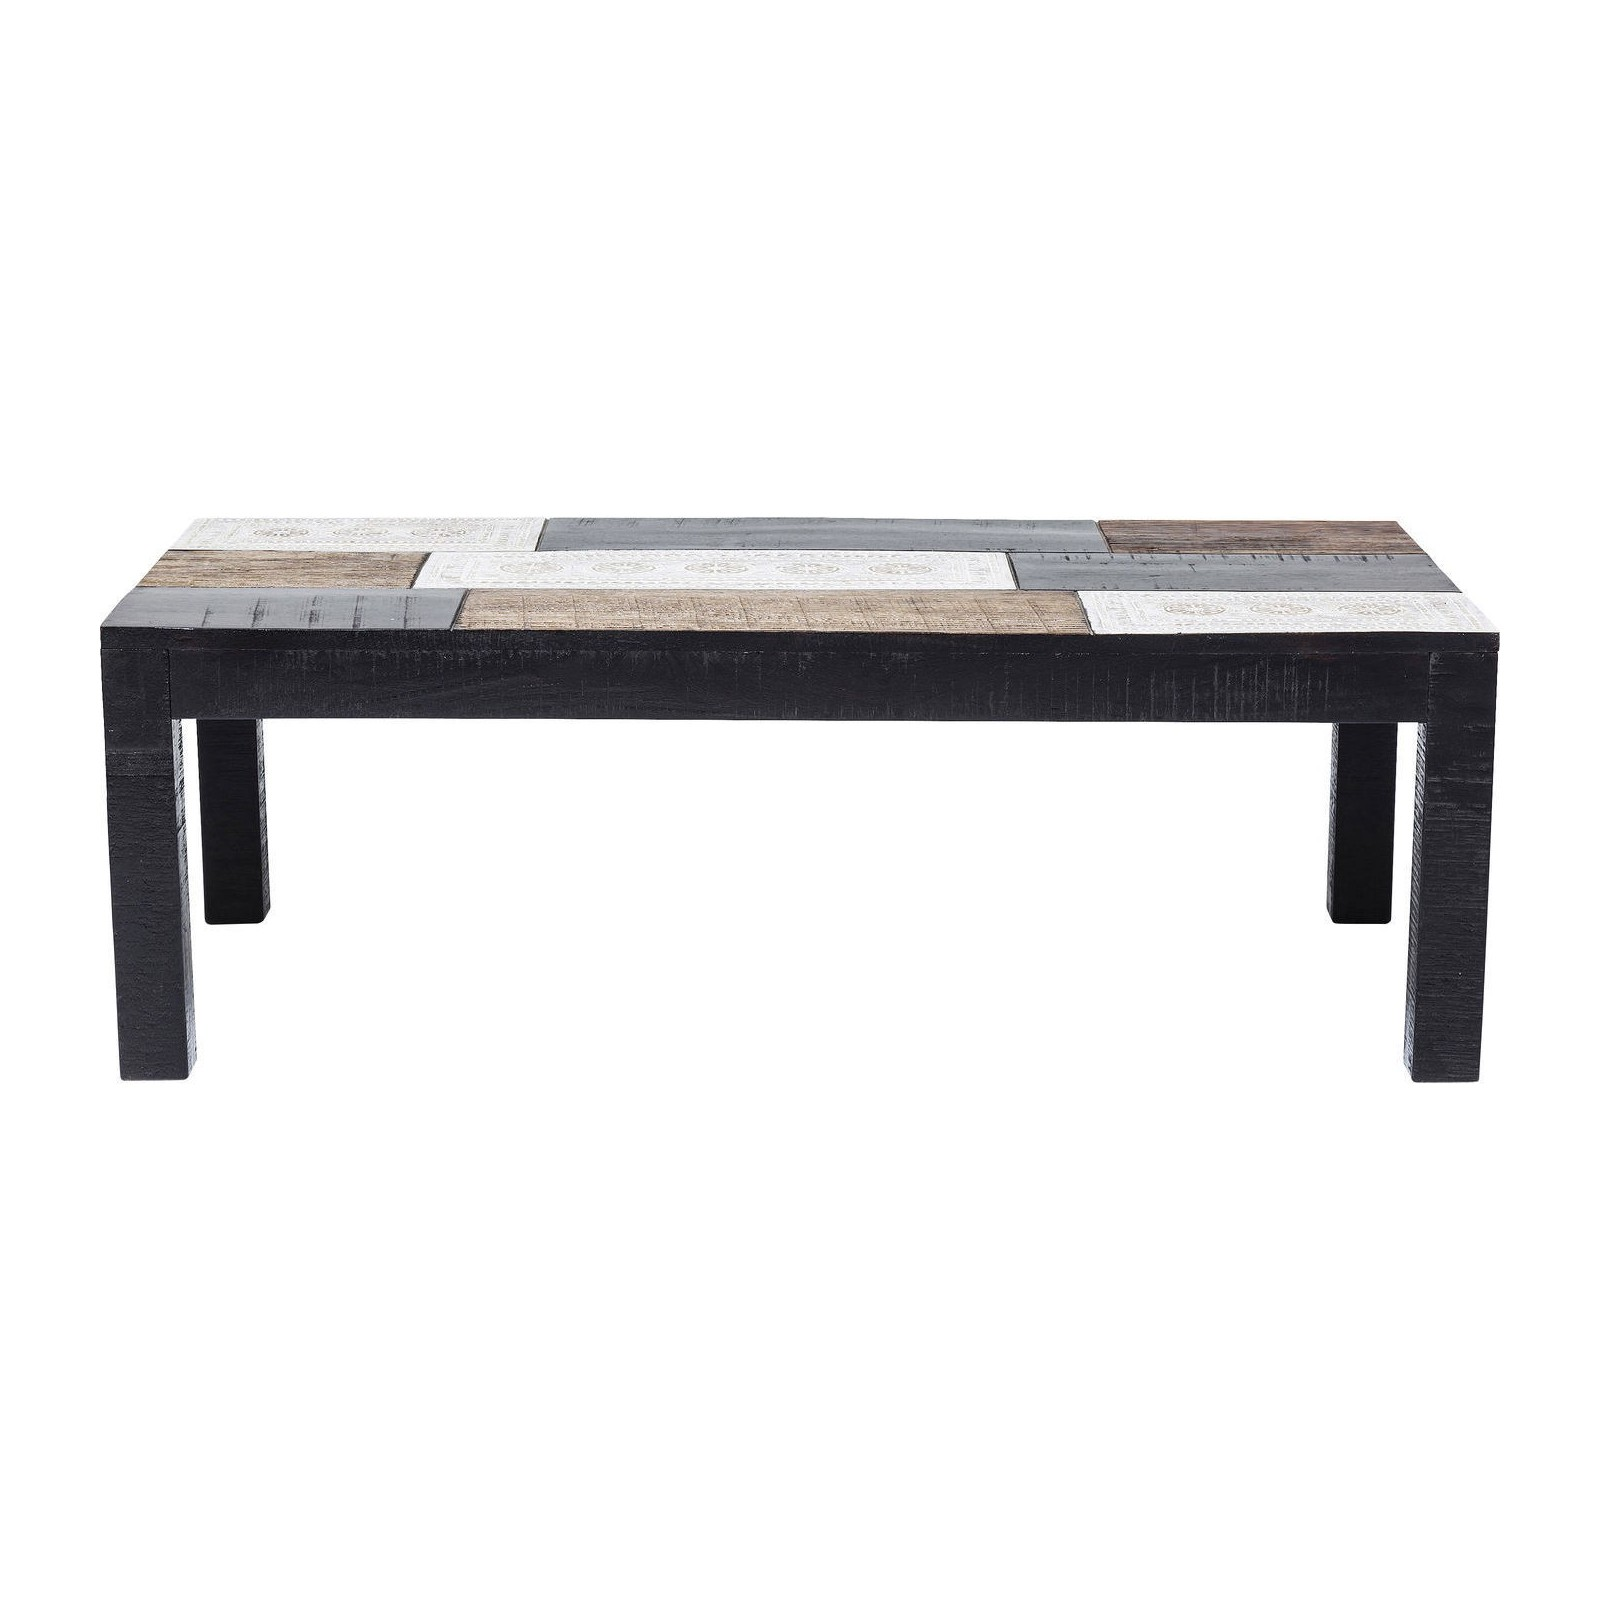 Table basse finca 120x60 cm kare design - Table kare design ...